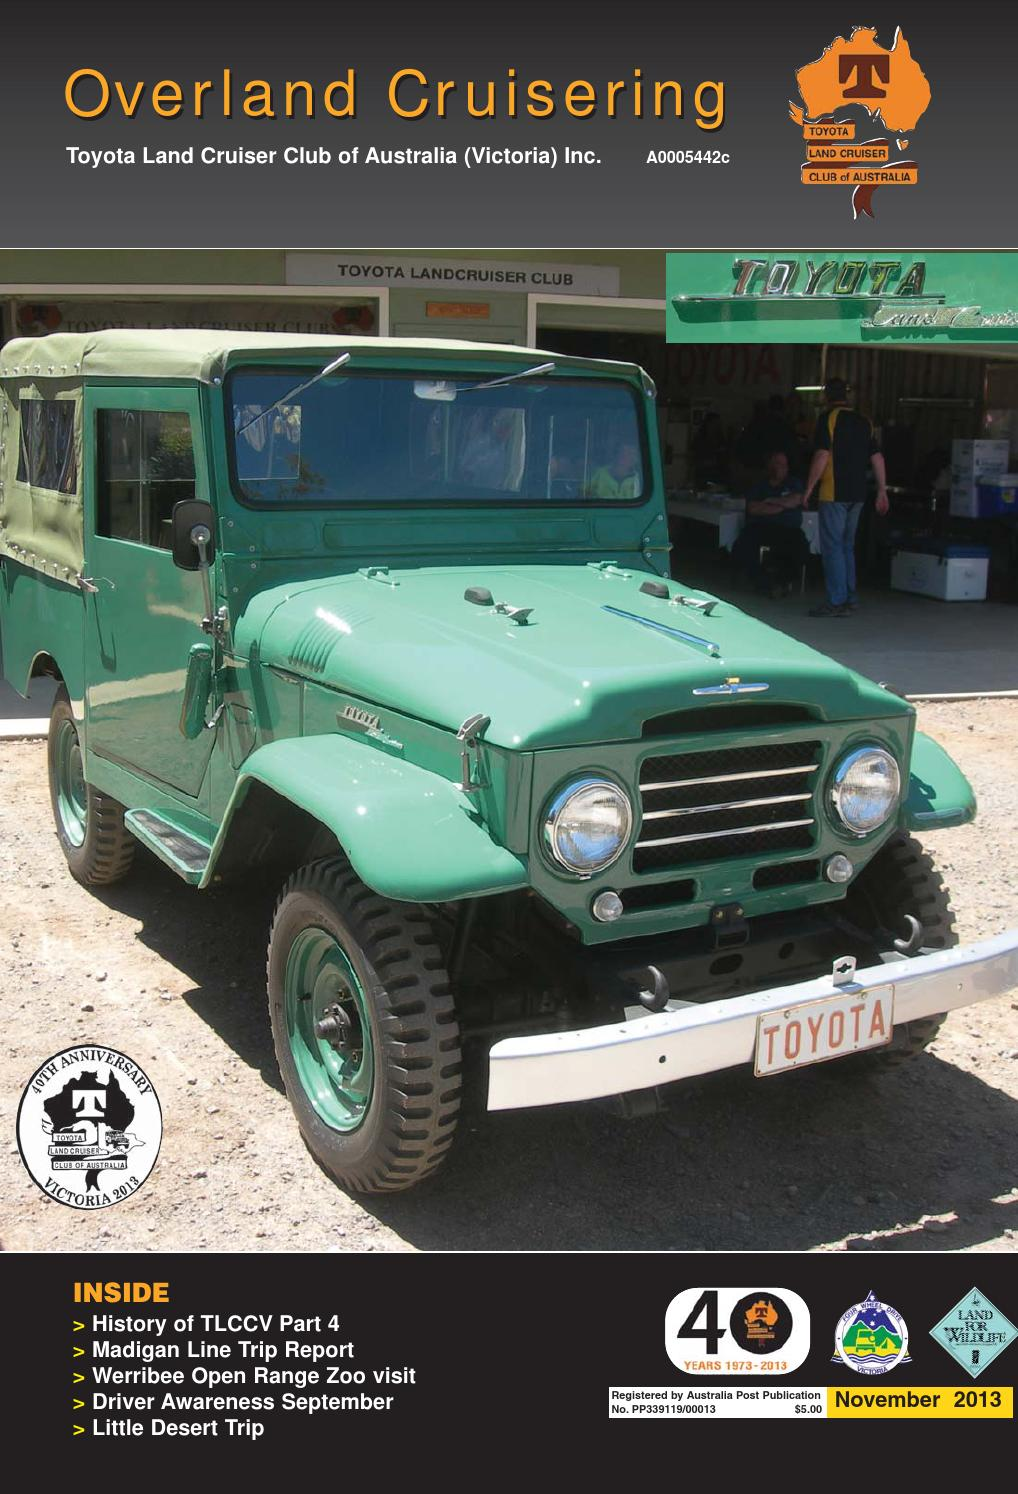 Land Cruiser 300 - a stylish off-road car produced by the Japanese concern Toyota